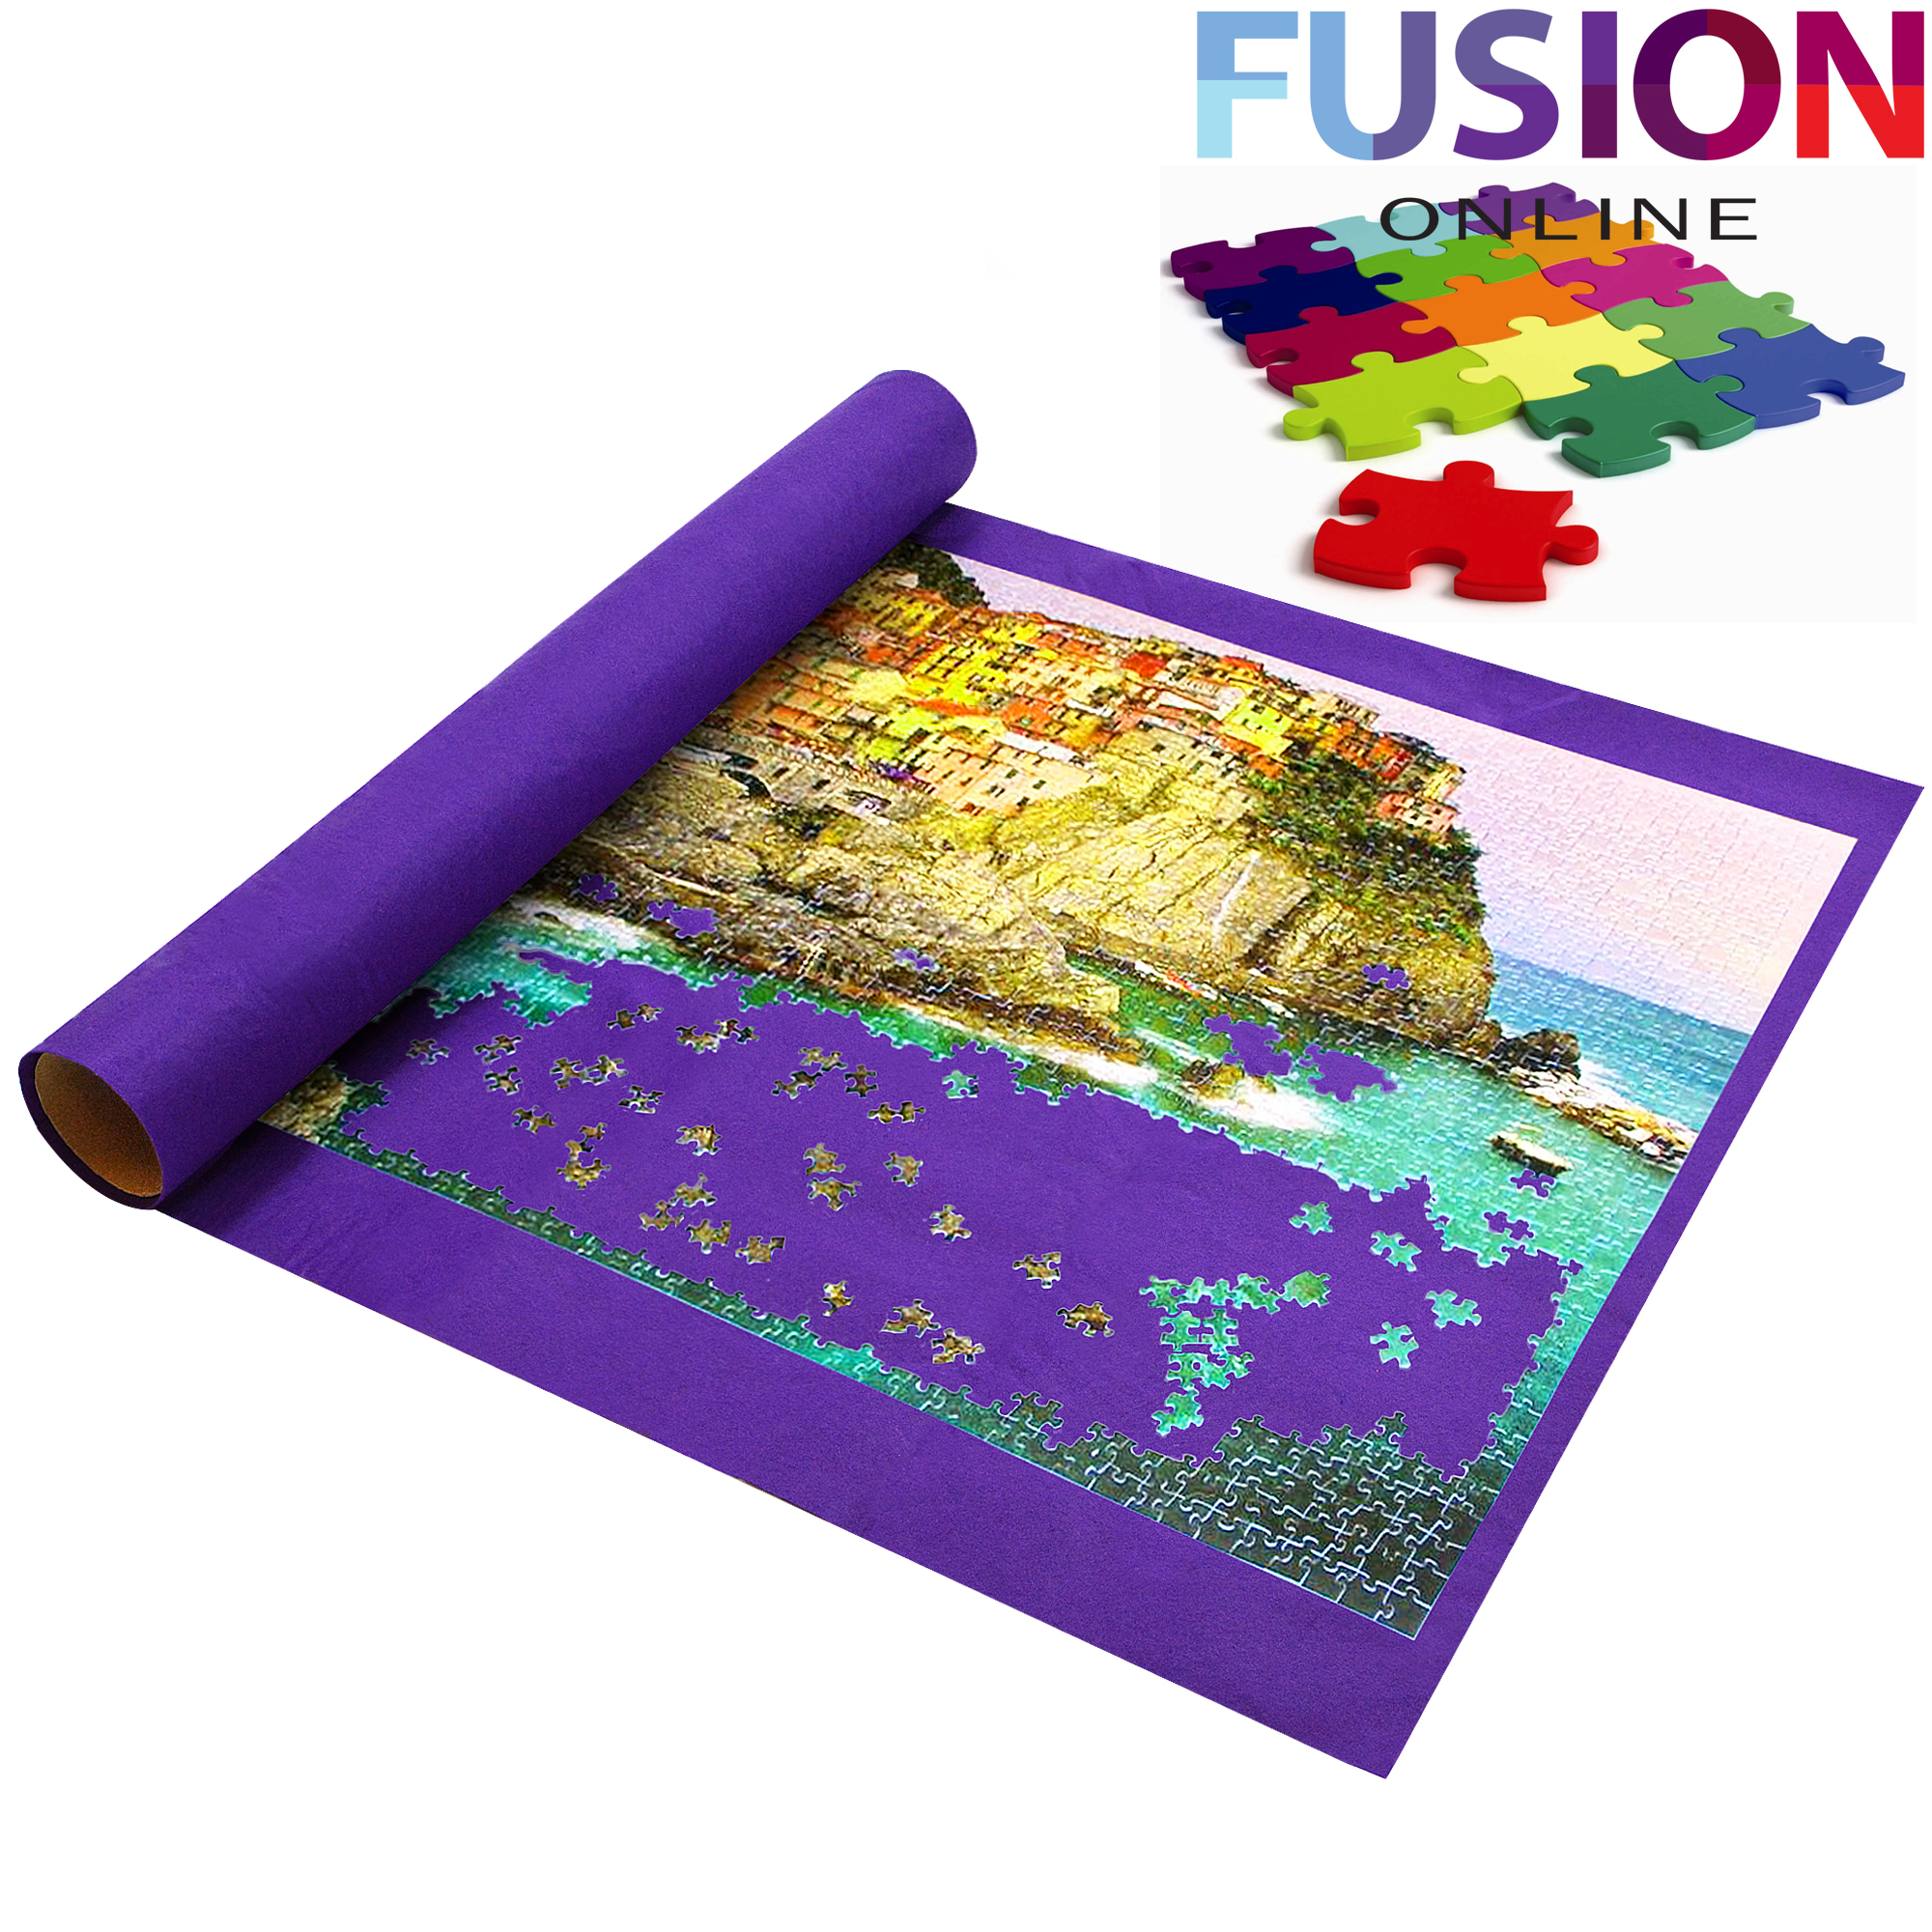 giant puzzle roll up mat jigsaw jumbo large 3000 pieces. Black Bedroom Furniture Sets. Home Design Ideas